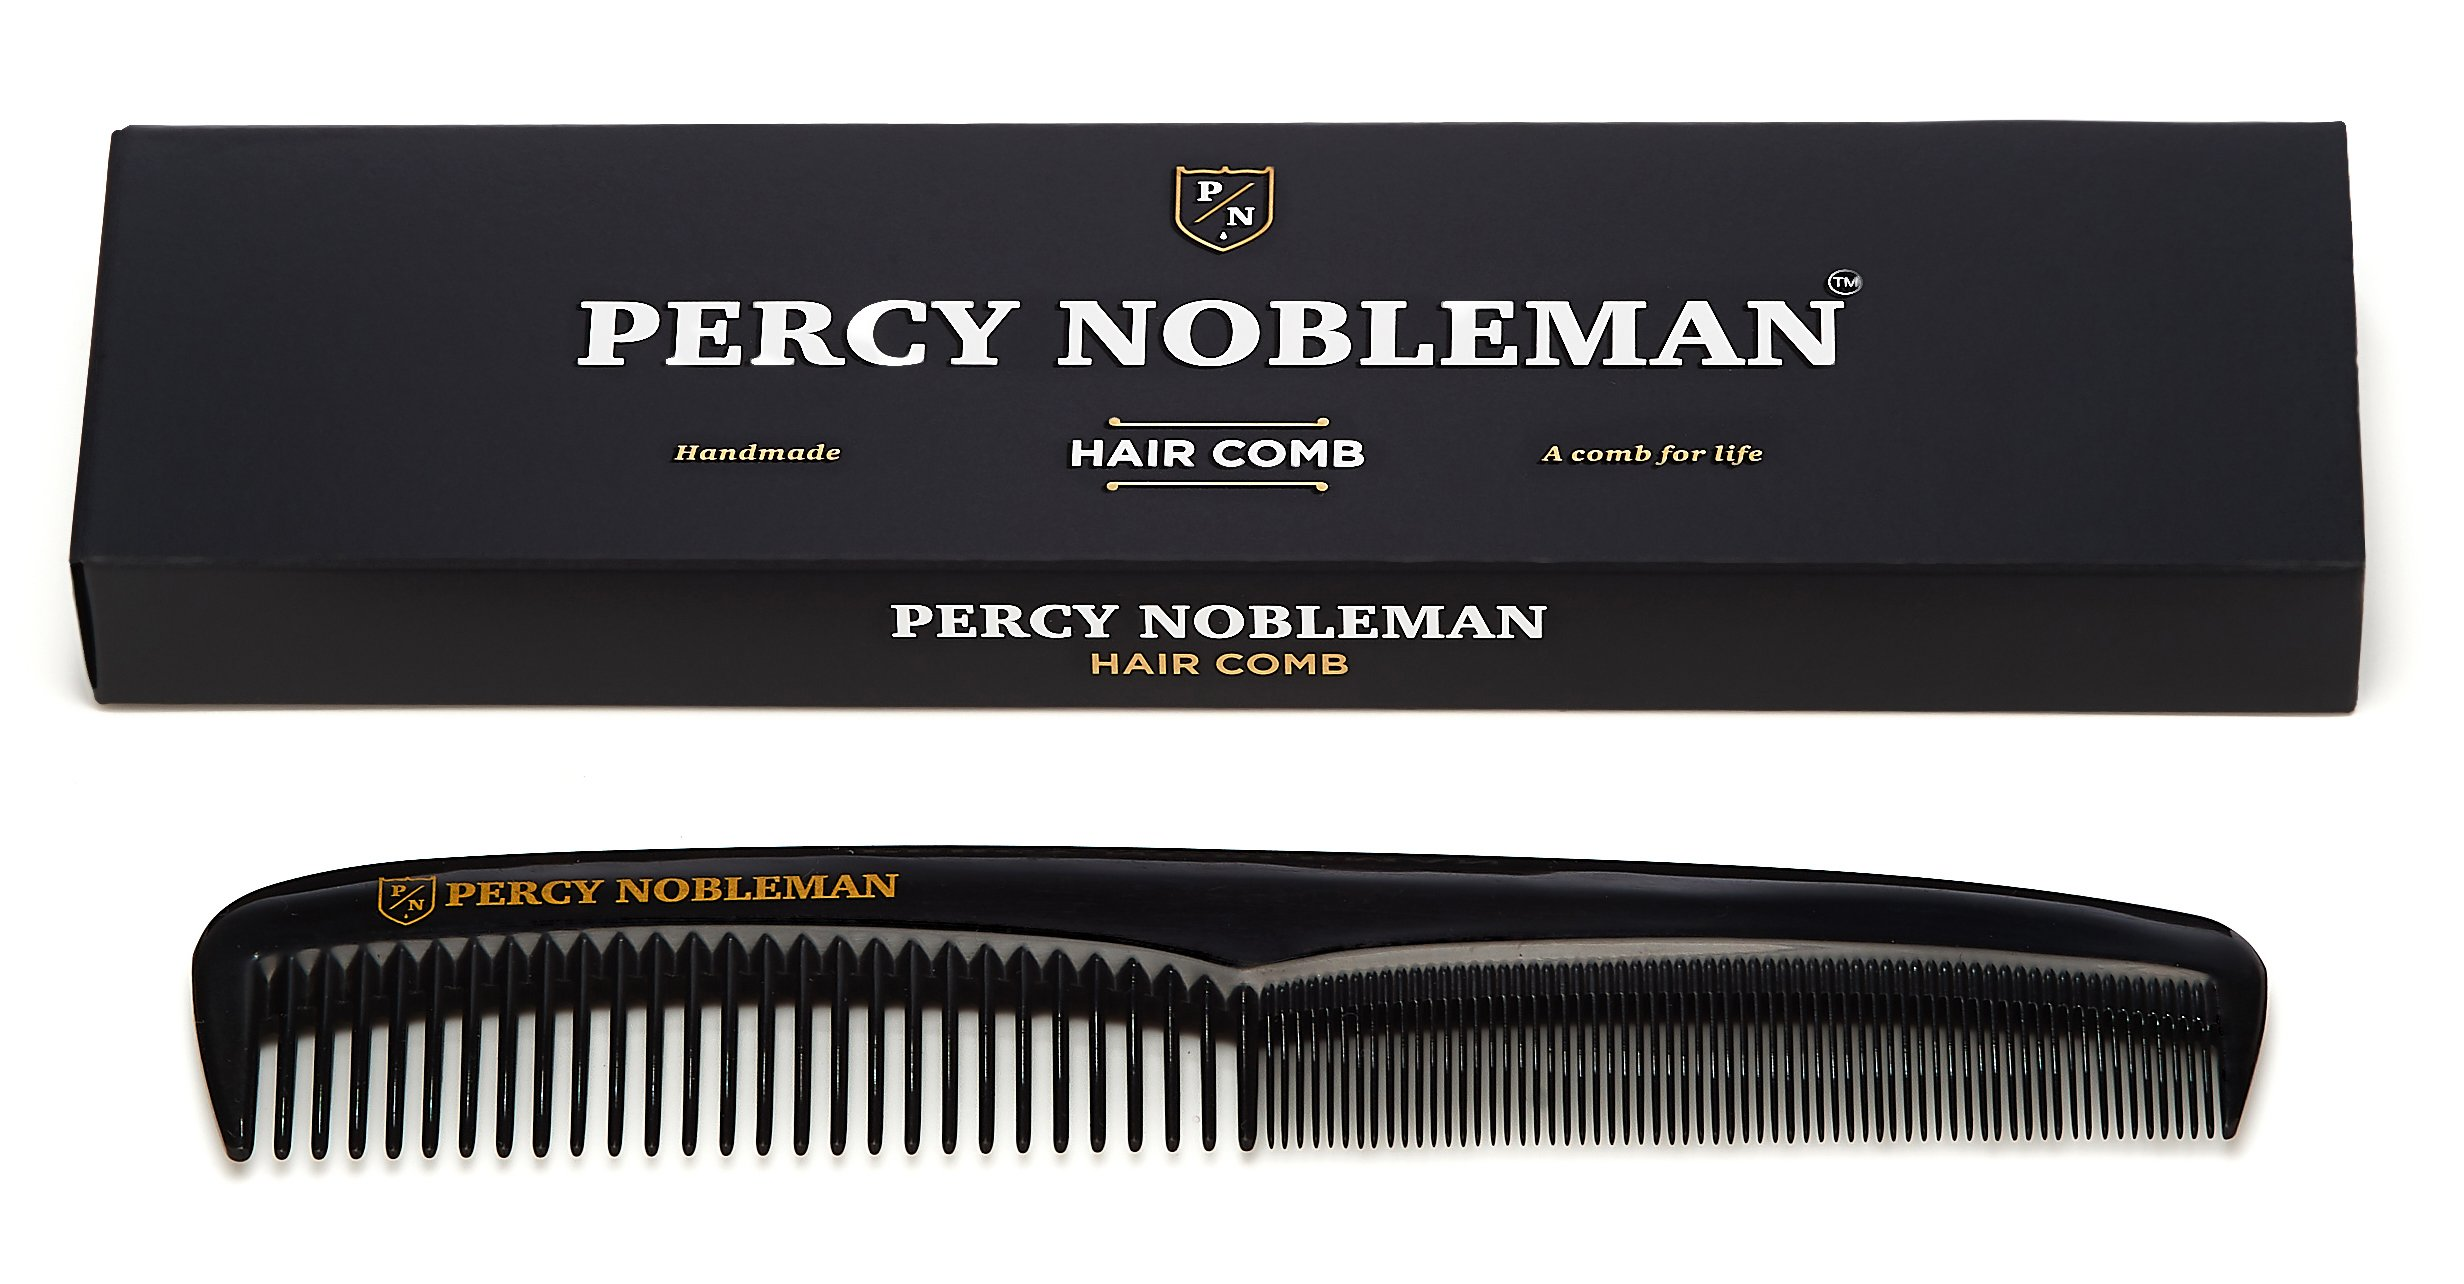 Percy Nobleman Hair Comb (Black) by Percy Nobleman (Image #3)